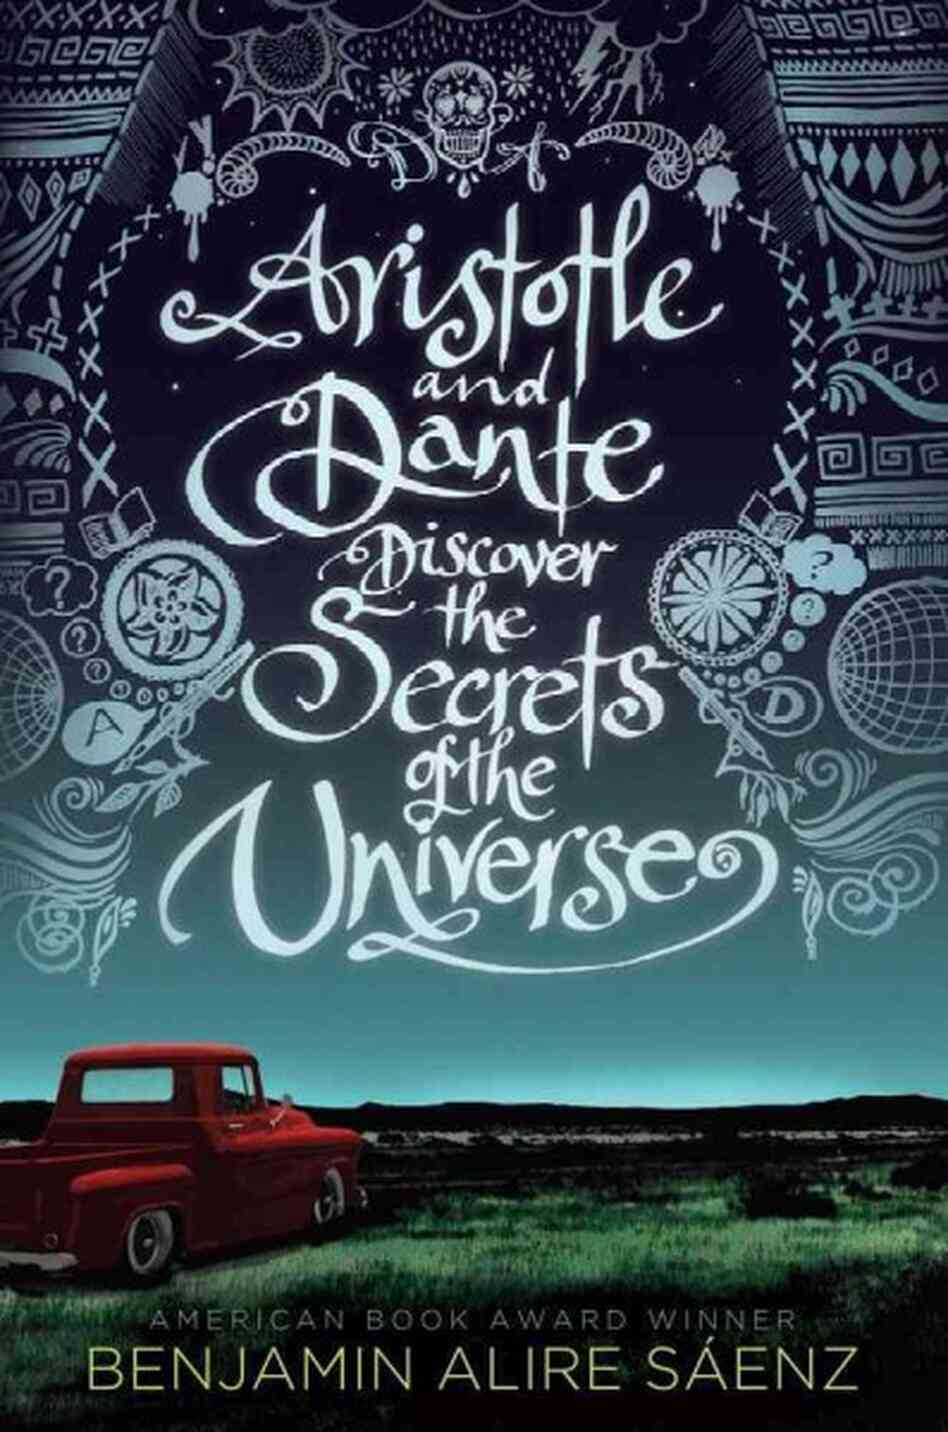 https://i0.wp.com/media.npr.org/assets/bakertaylor/covers/a/aristotle-and-dante-discover-the-secrets-of-the-universe/9781442408920_custom-ab1ee04526644c3ae958cba37007c84d709a2fb1-s6-c30.jpg